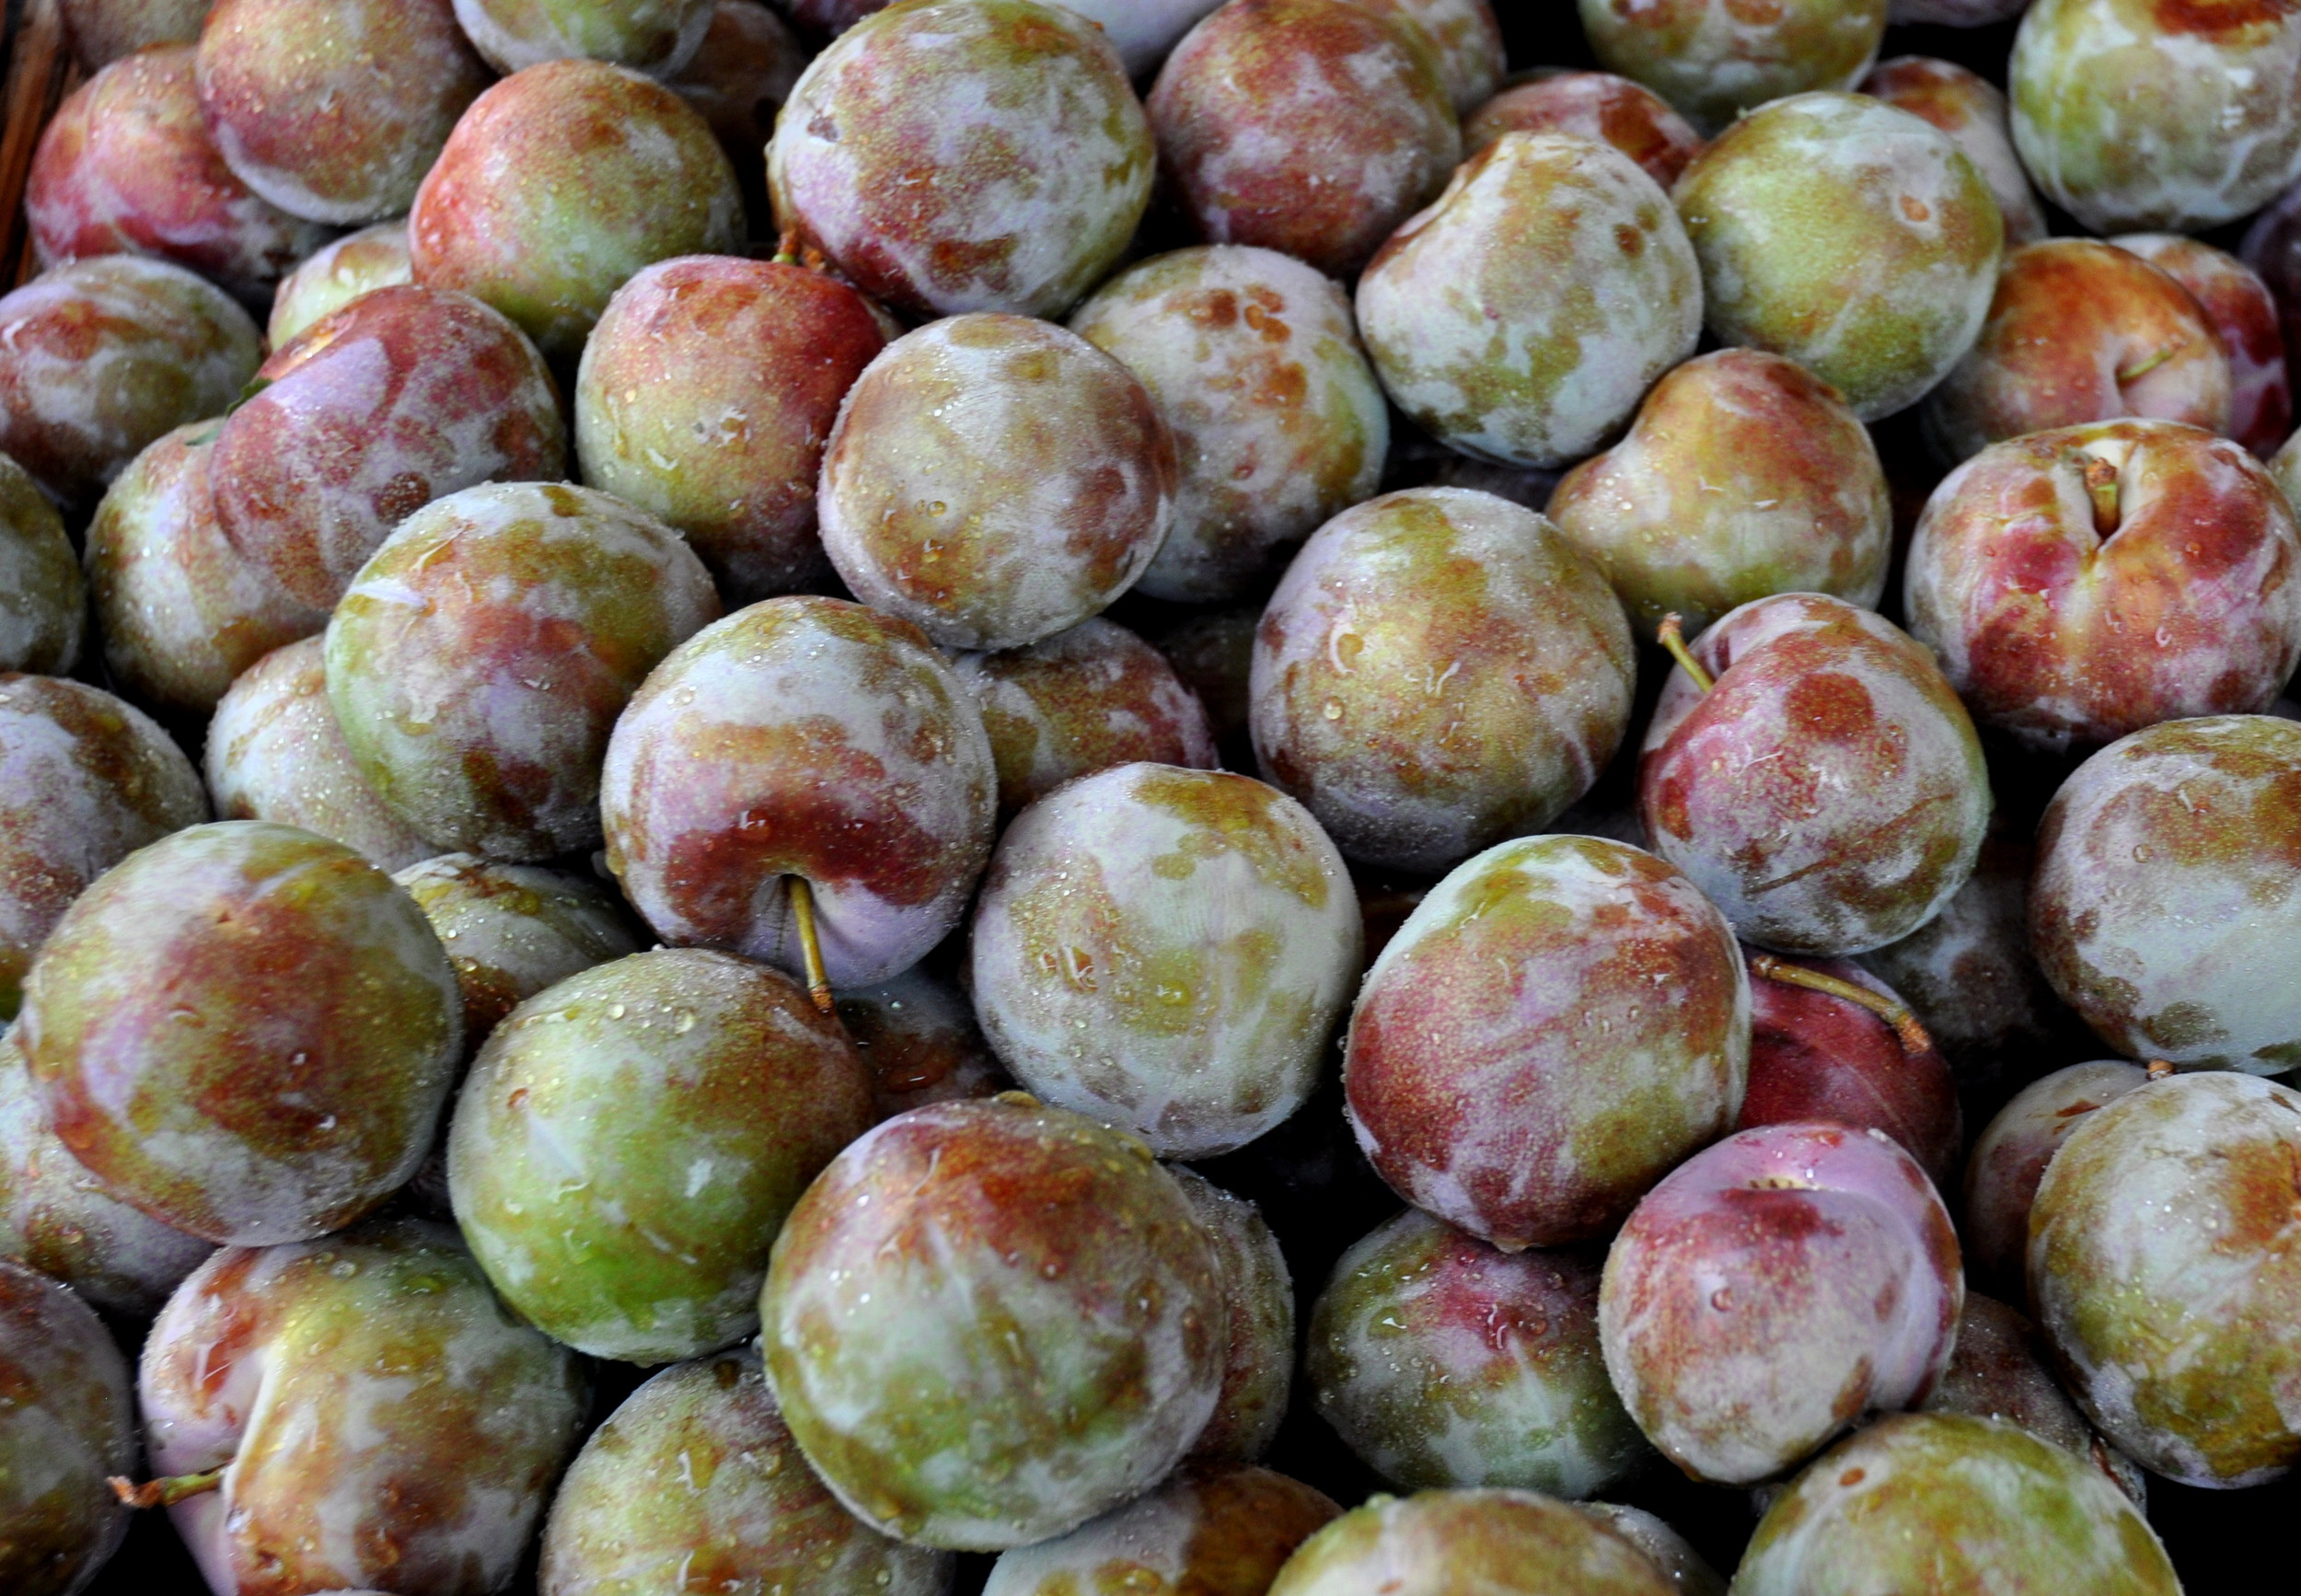 Hawaiian Punch pluots from Collins Family Orchards. Photo copyright 2014 by Zachary D. Lyons.